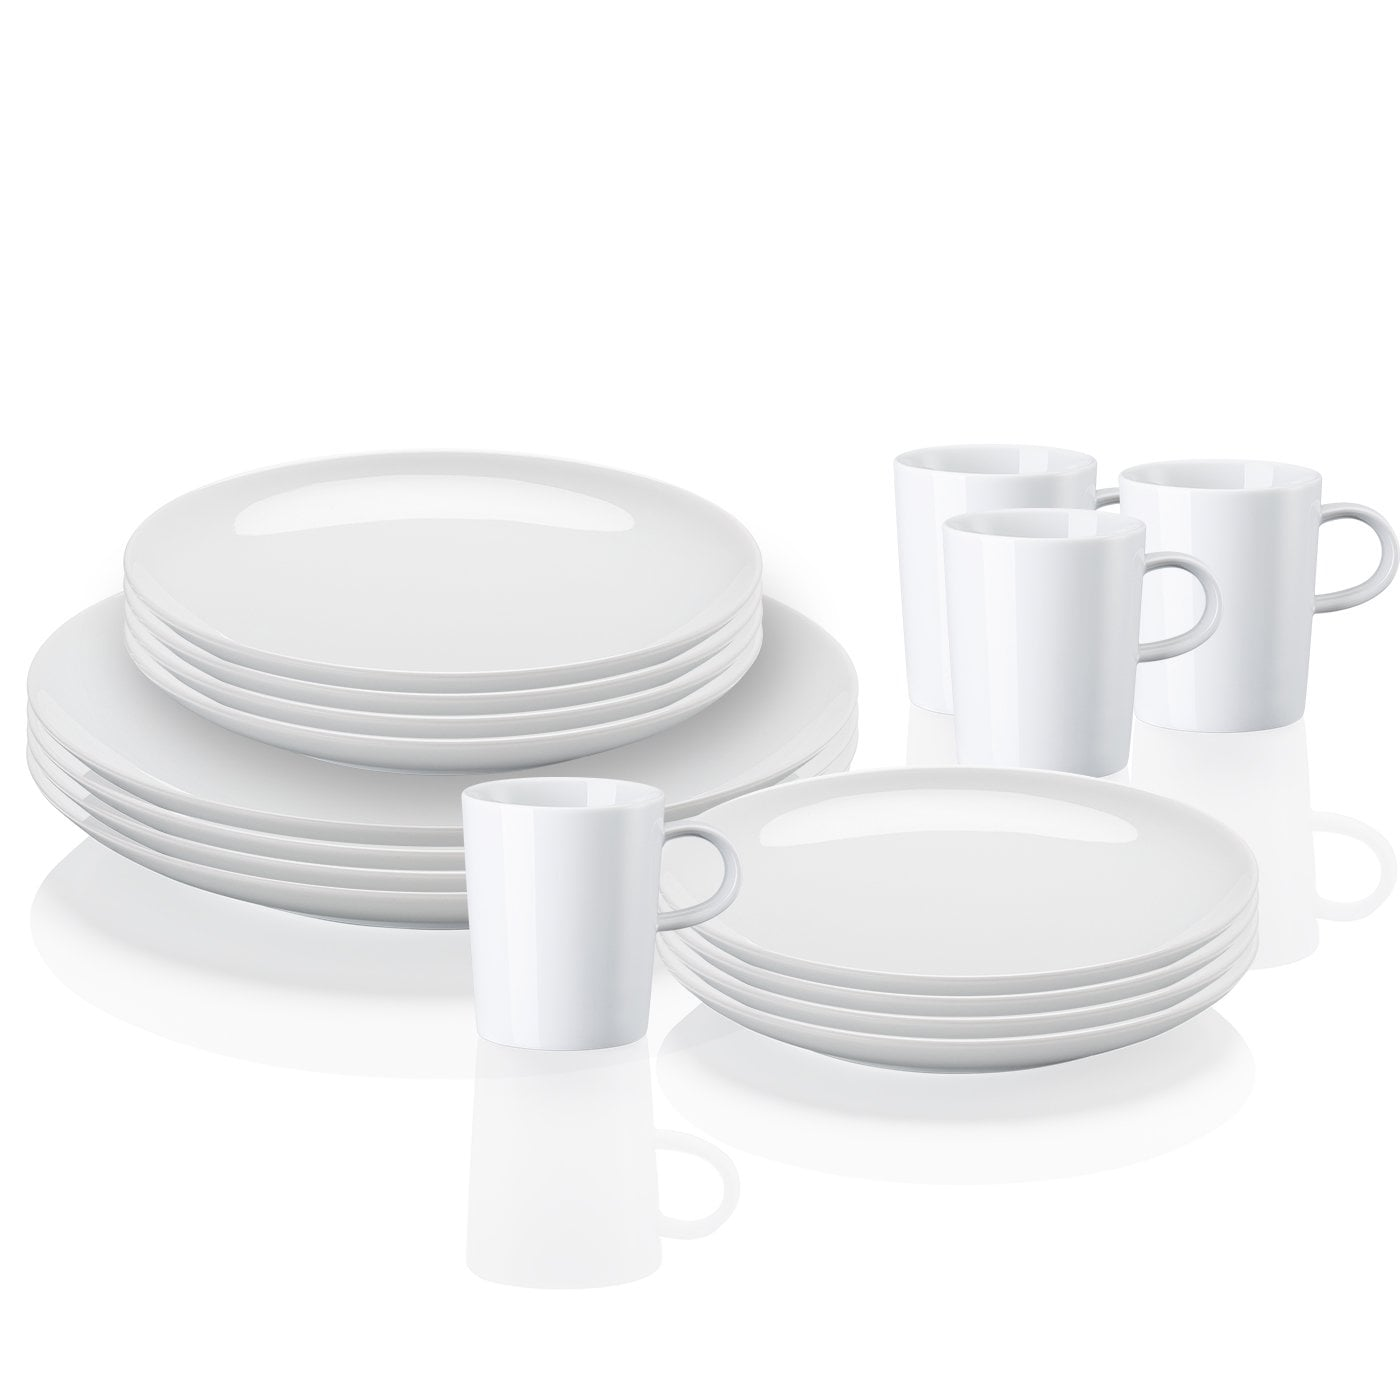 Cucina 4 X 4 family set 16 pcs.